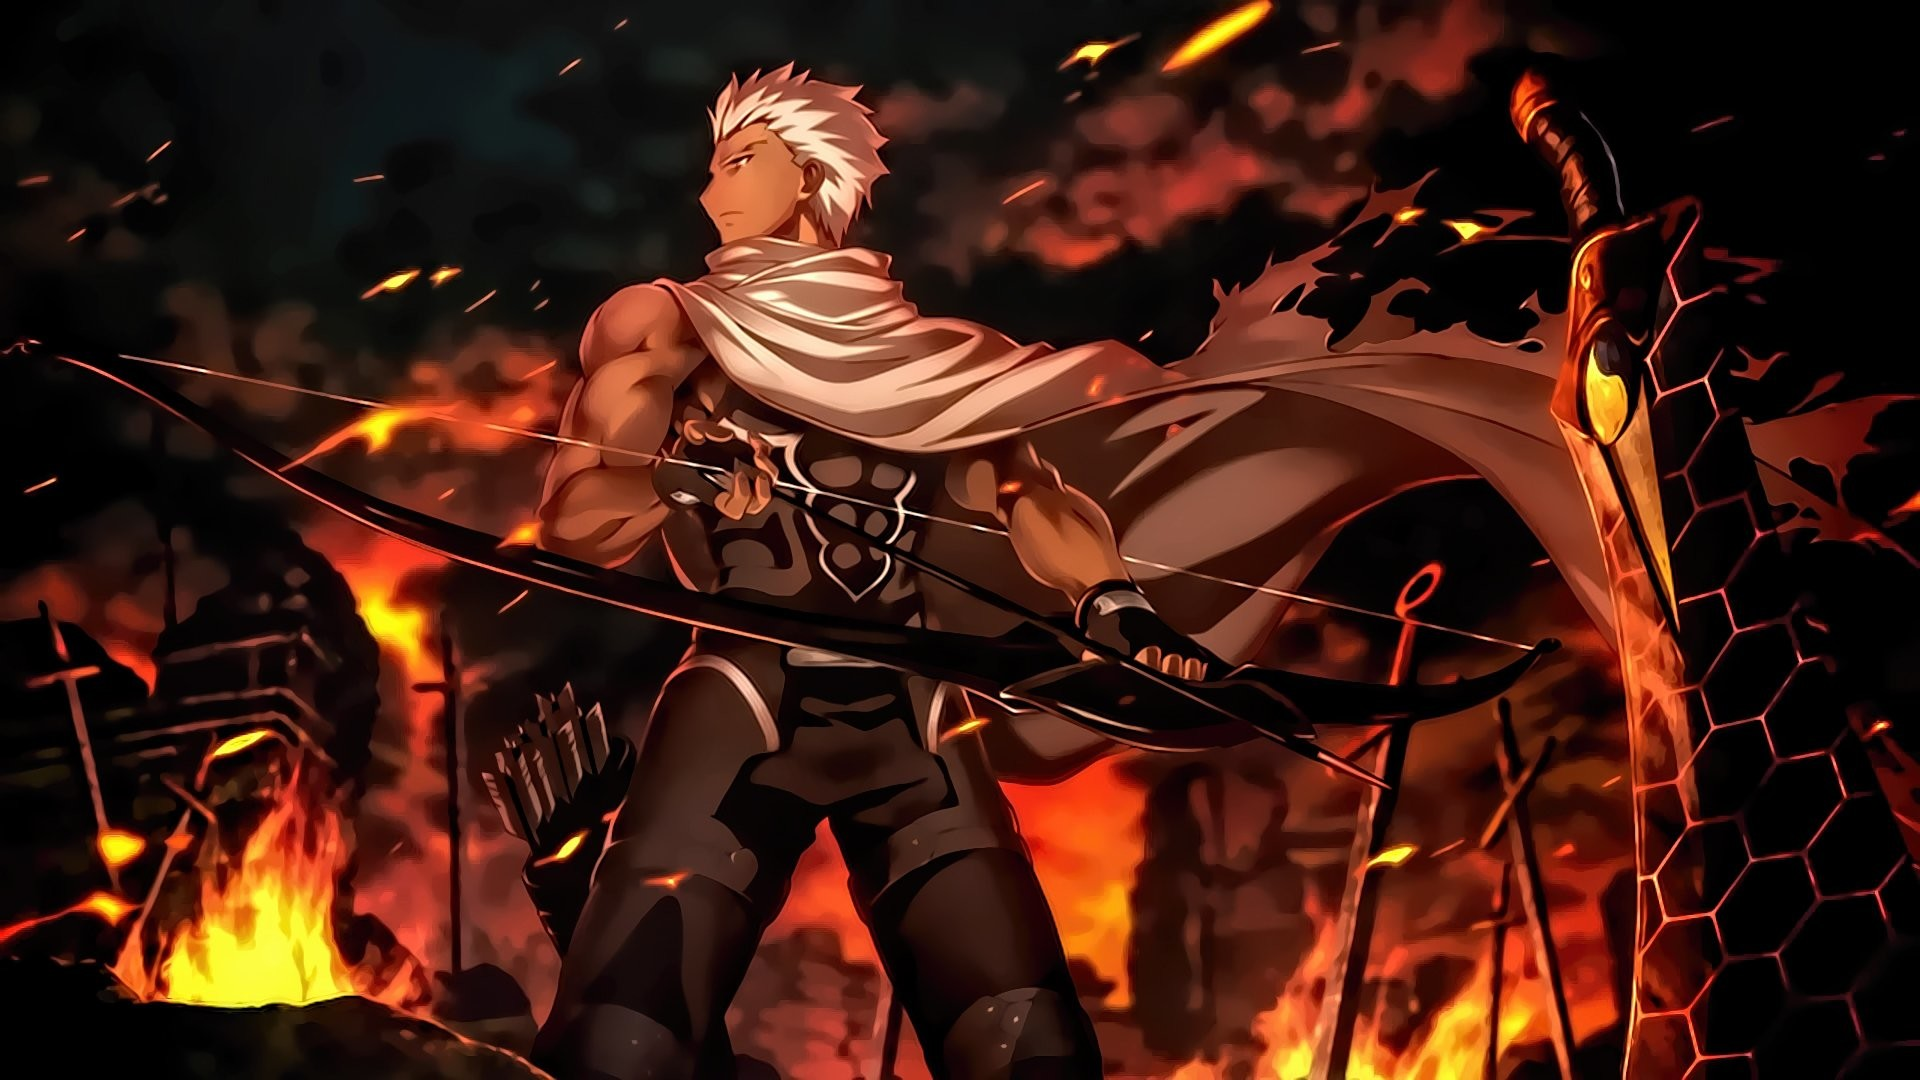 1920x1080 87 Fate/Stay Night: Unlimited Blade Works HD Wallpapers .